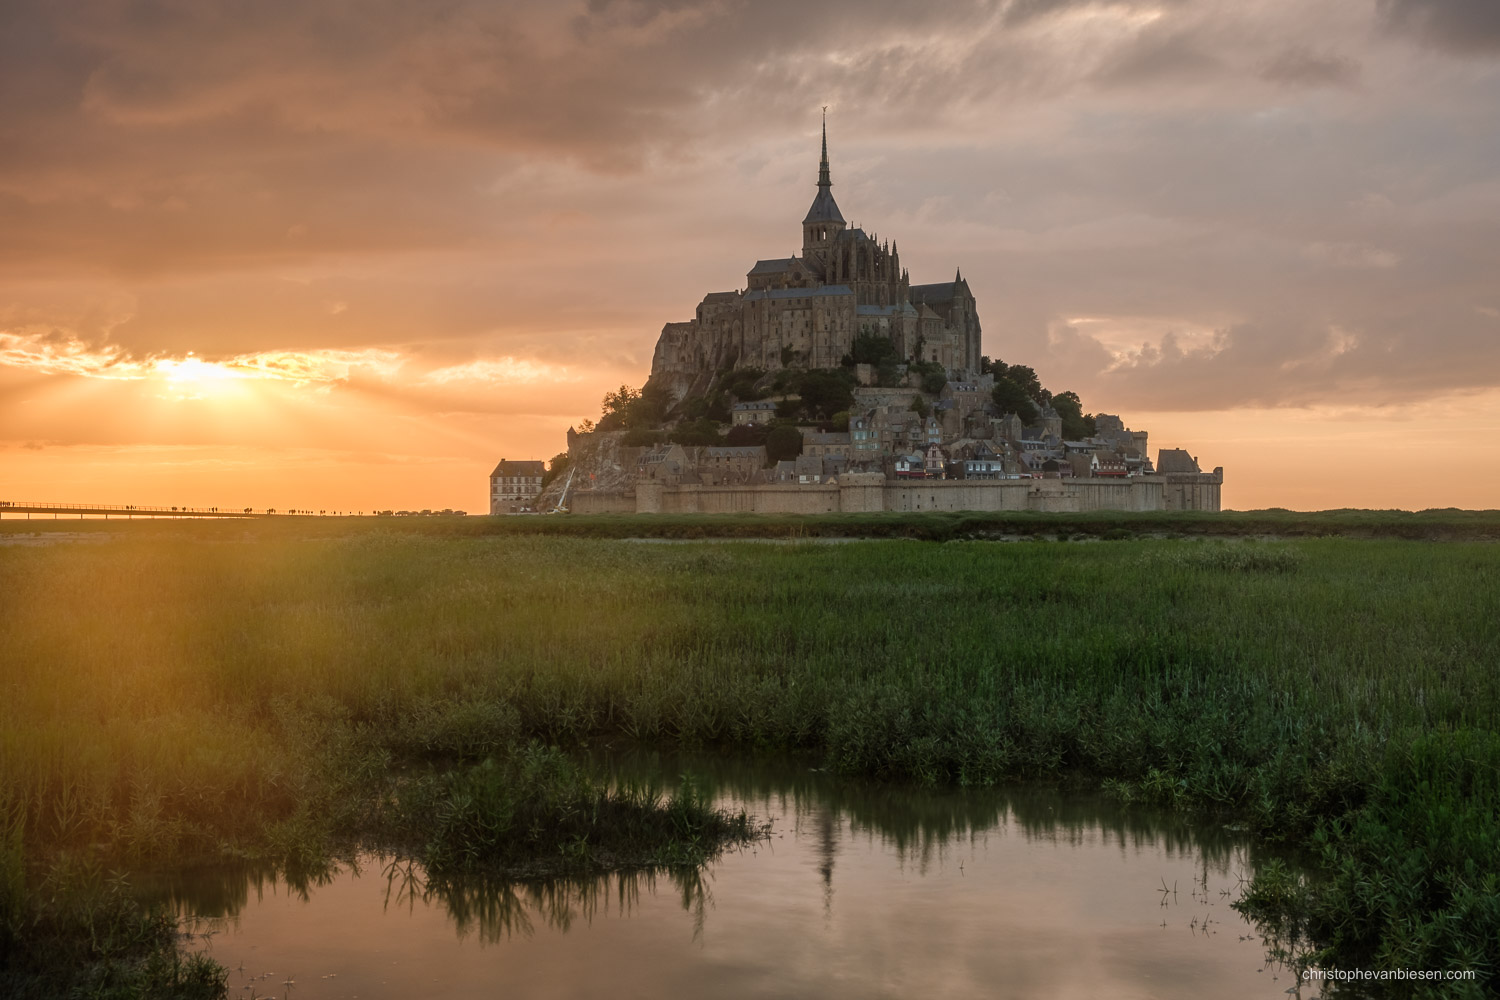 Mont Saint Michel - France - Sunset over the Mont Saint Michel in France, on the border between Normandy and Brittany - The Wonder of the Western World